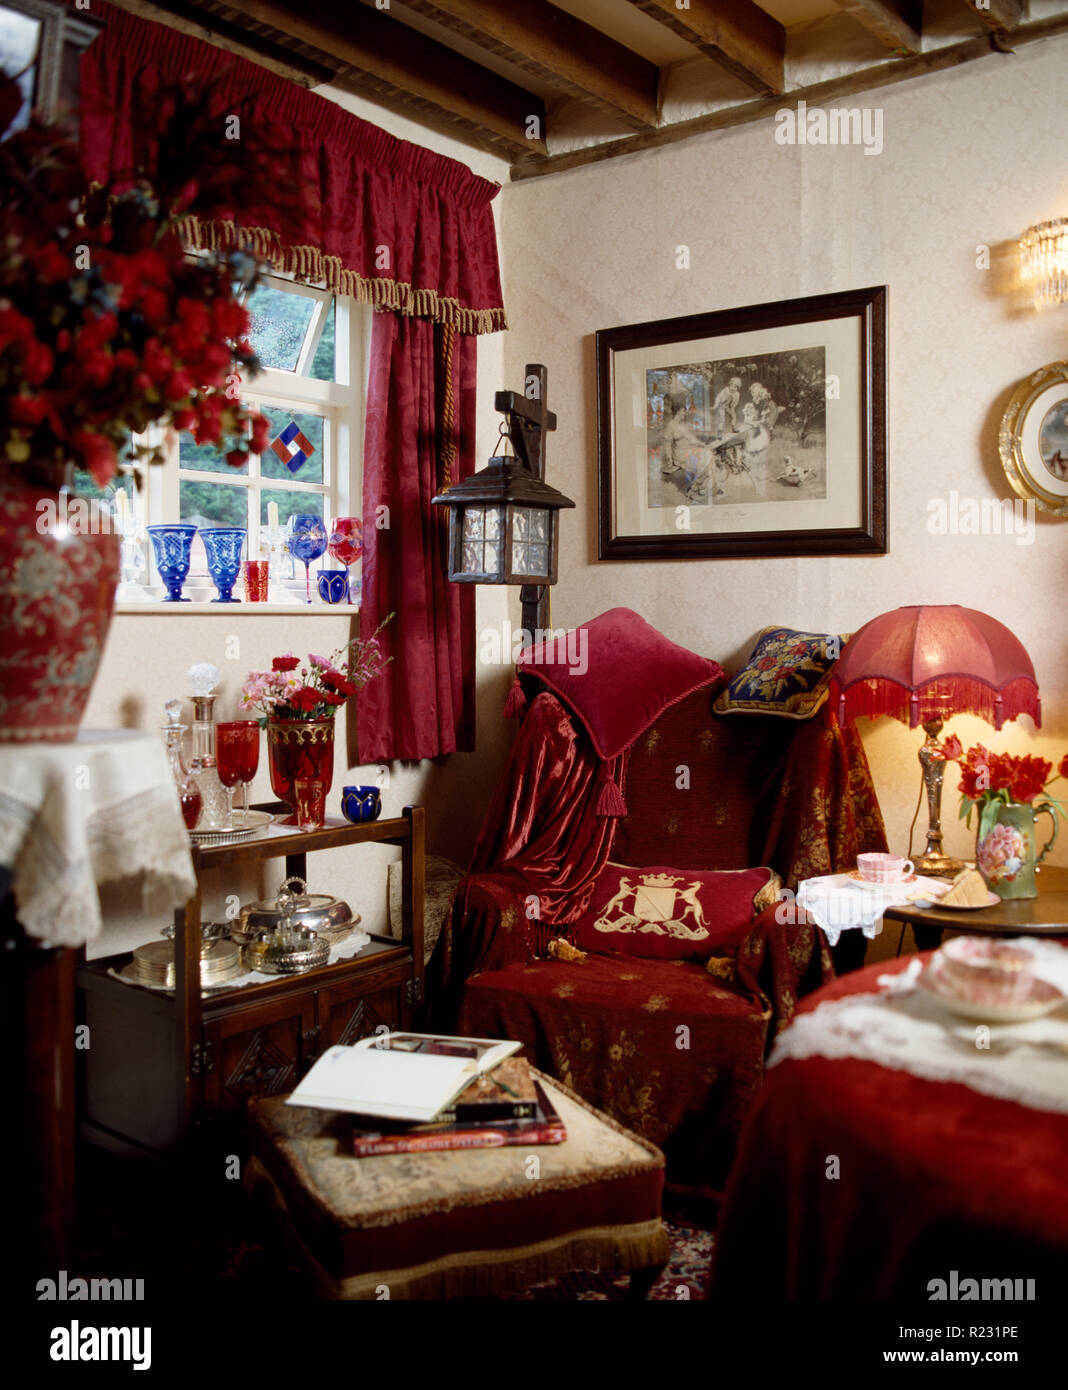 Red curtains in old-fashioned, cluttered sitting room Stock ...